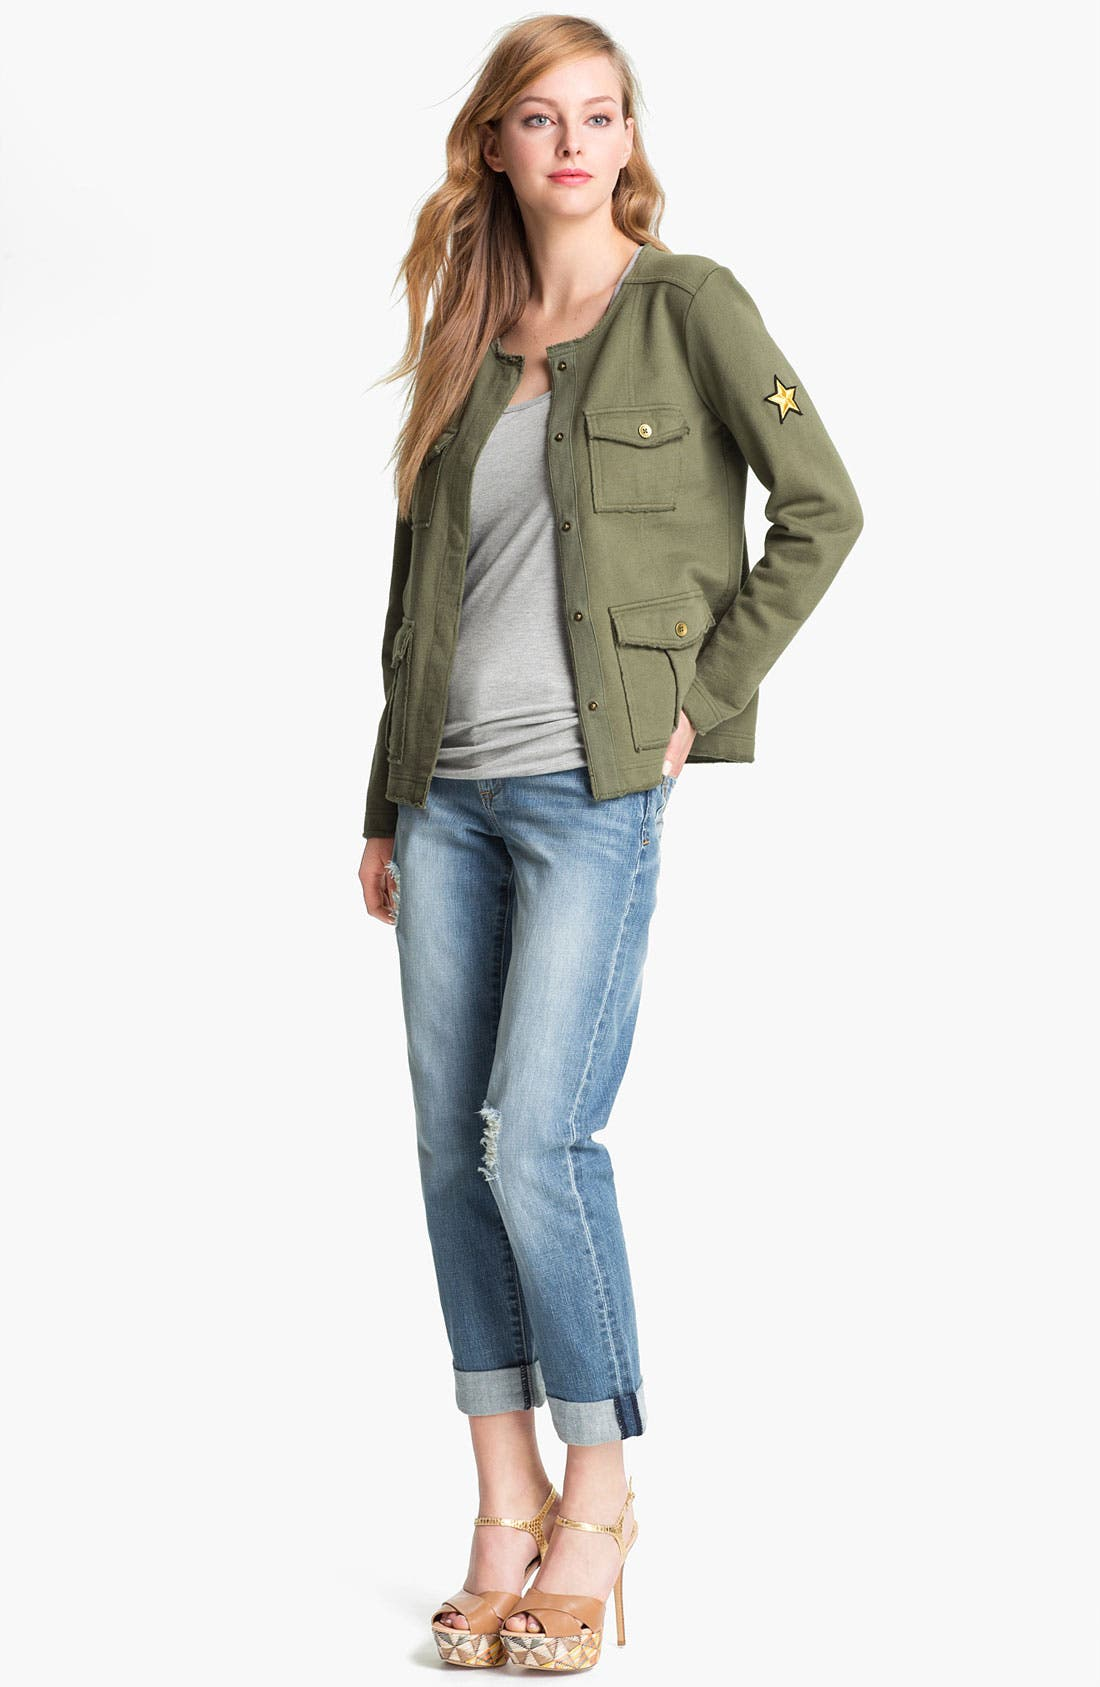 KUT FROM THE KLOTH,                             'Catherine' Distressed Slim Boyfriend Jeans,                             Alternate thumbnail 6, color,                             400